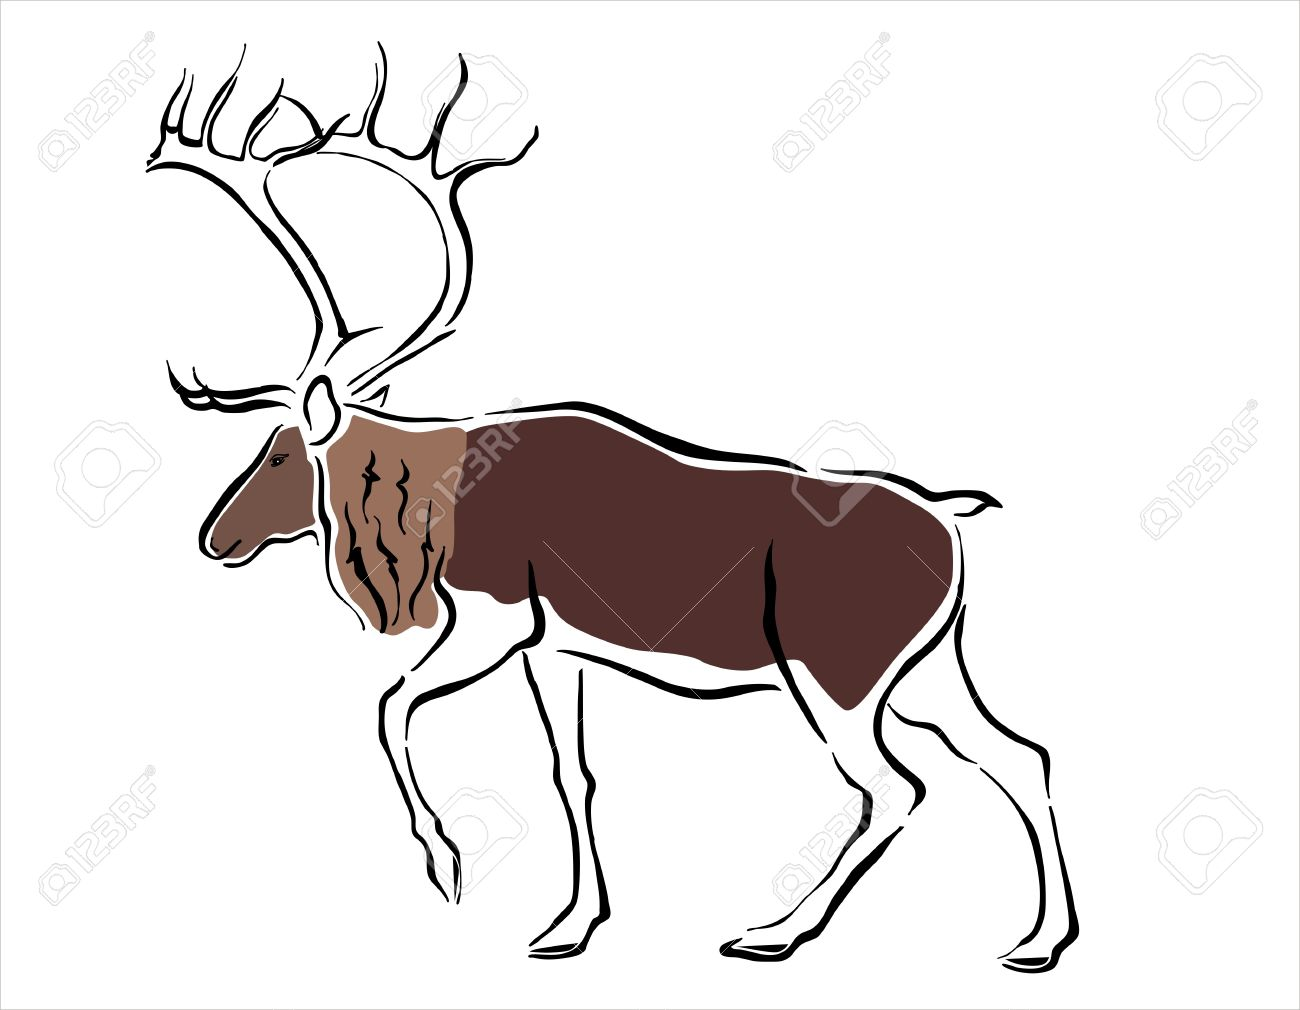 Uncategorized Drawing Of A Reindeer drawing of a reindeer royalty free cliparts vectors and stock vector 15526669